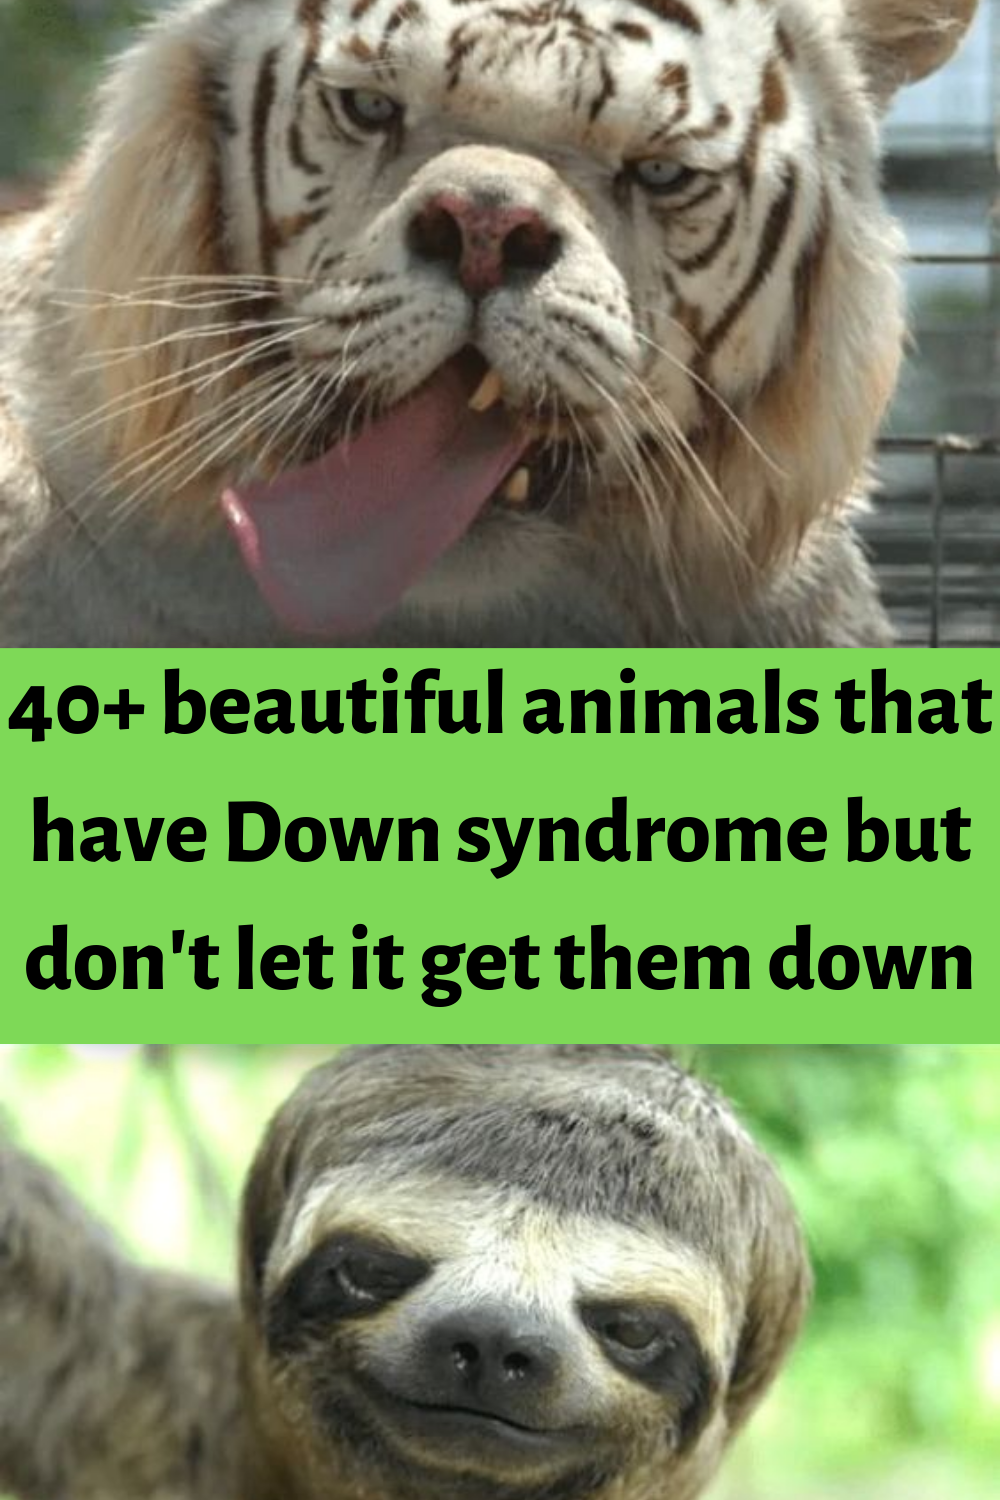 40+ beautiful animals that have Down syndrome but don't